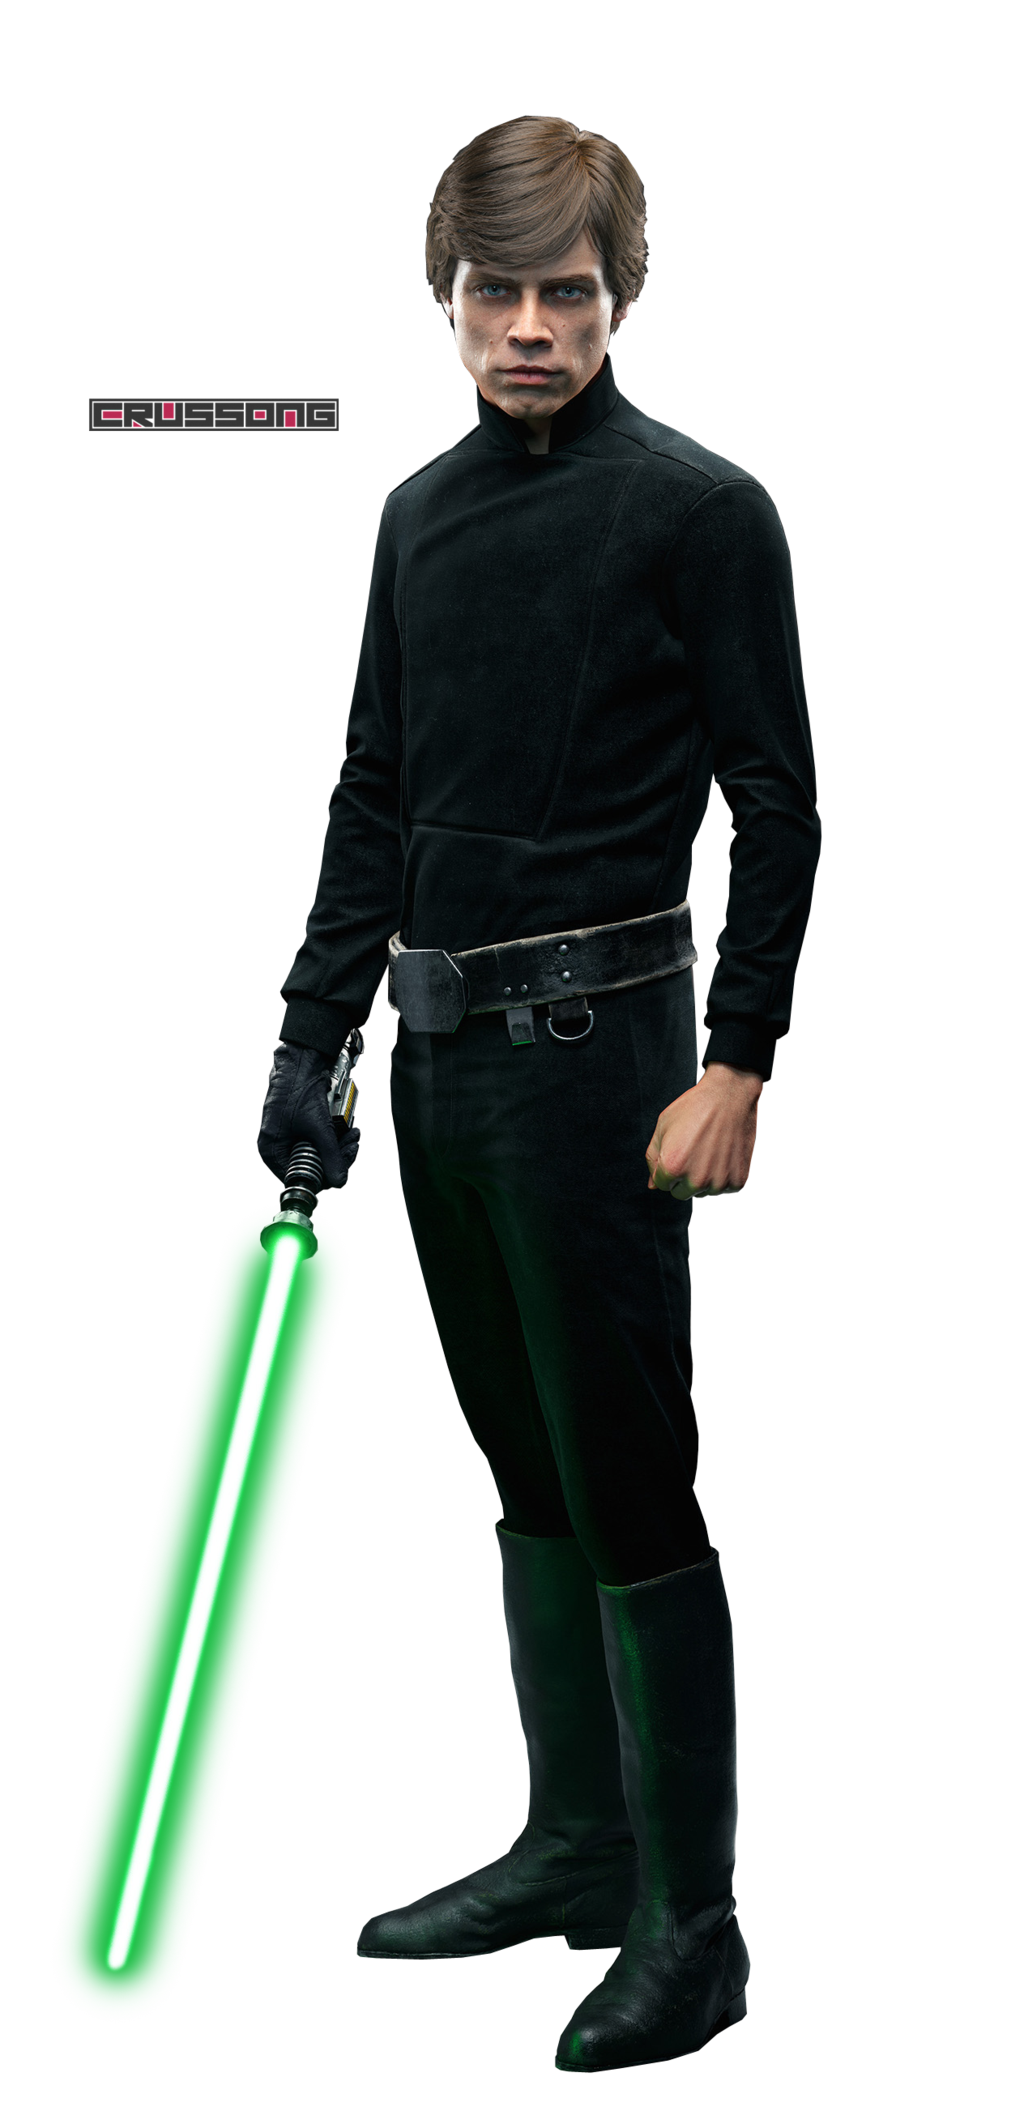 Luke Skywalker   Star Wars Battlefront Render by Crussong on 1024x2128